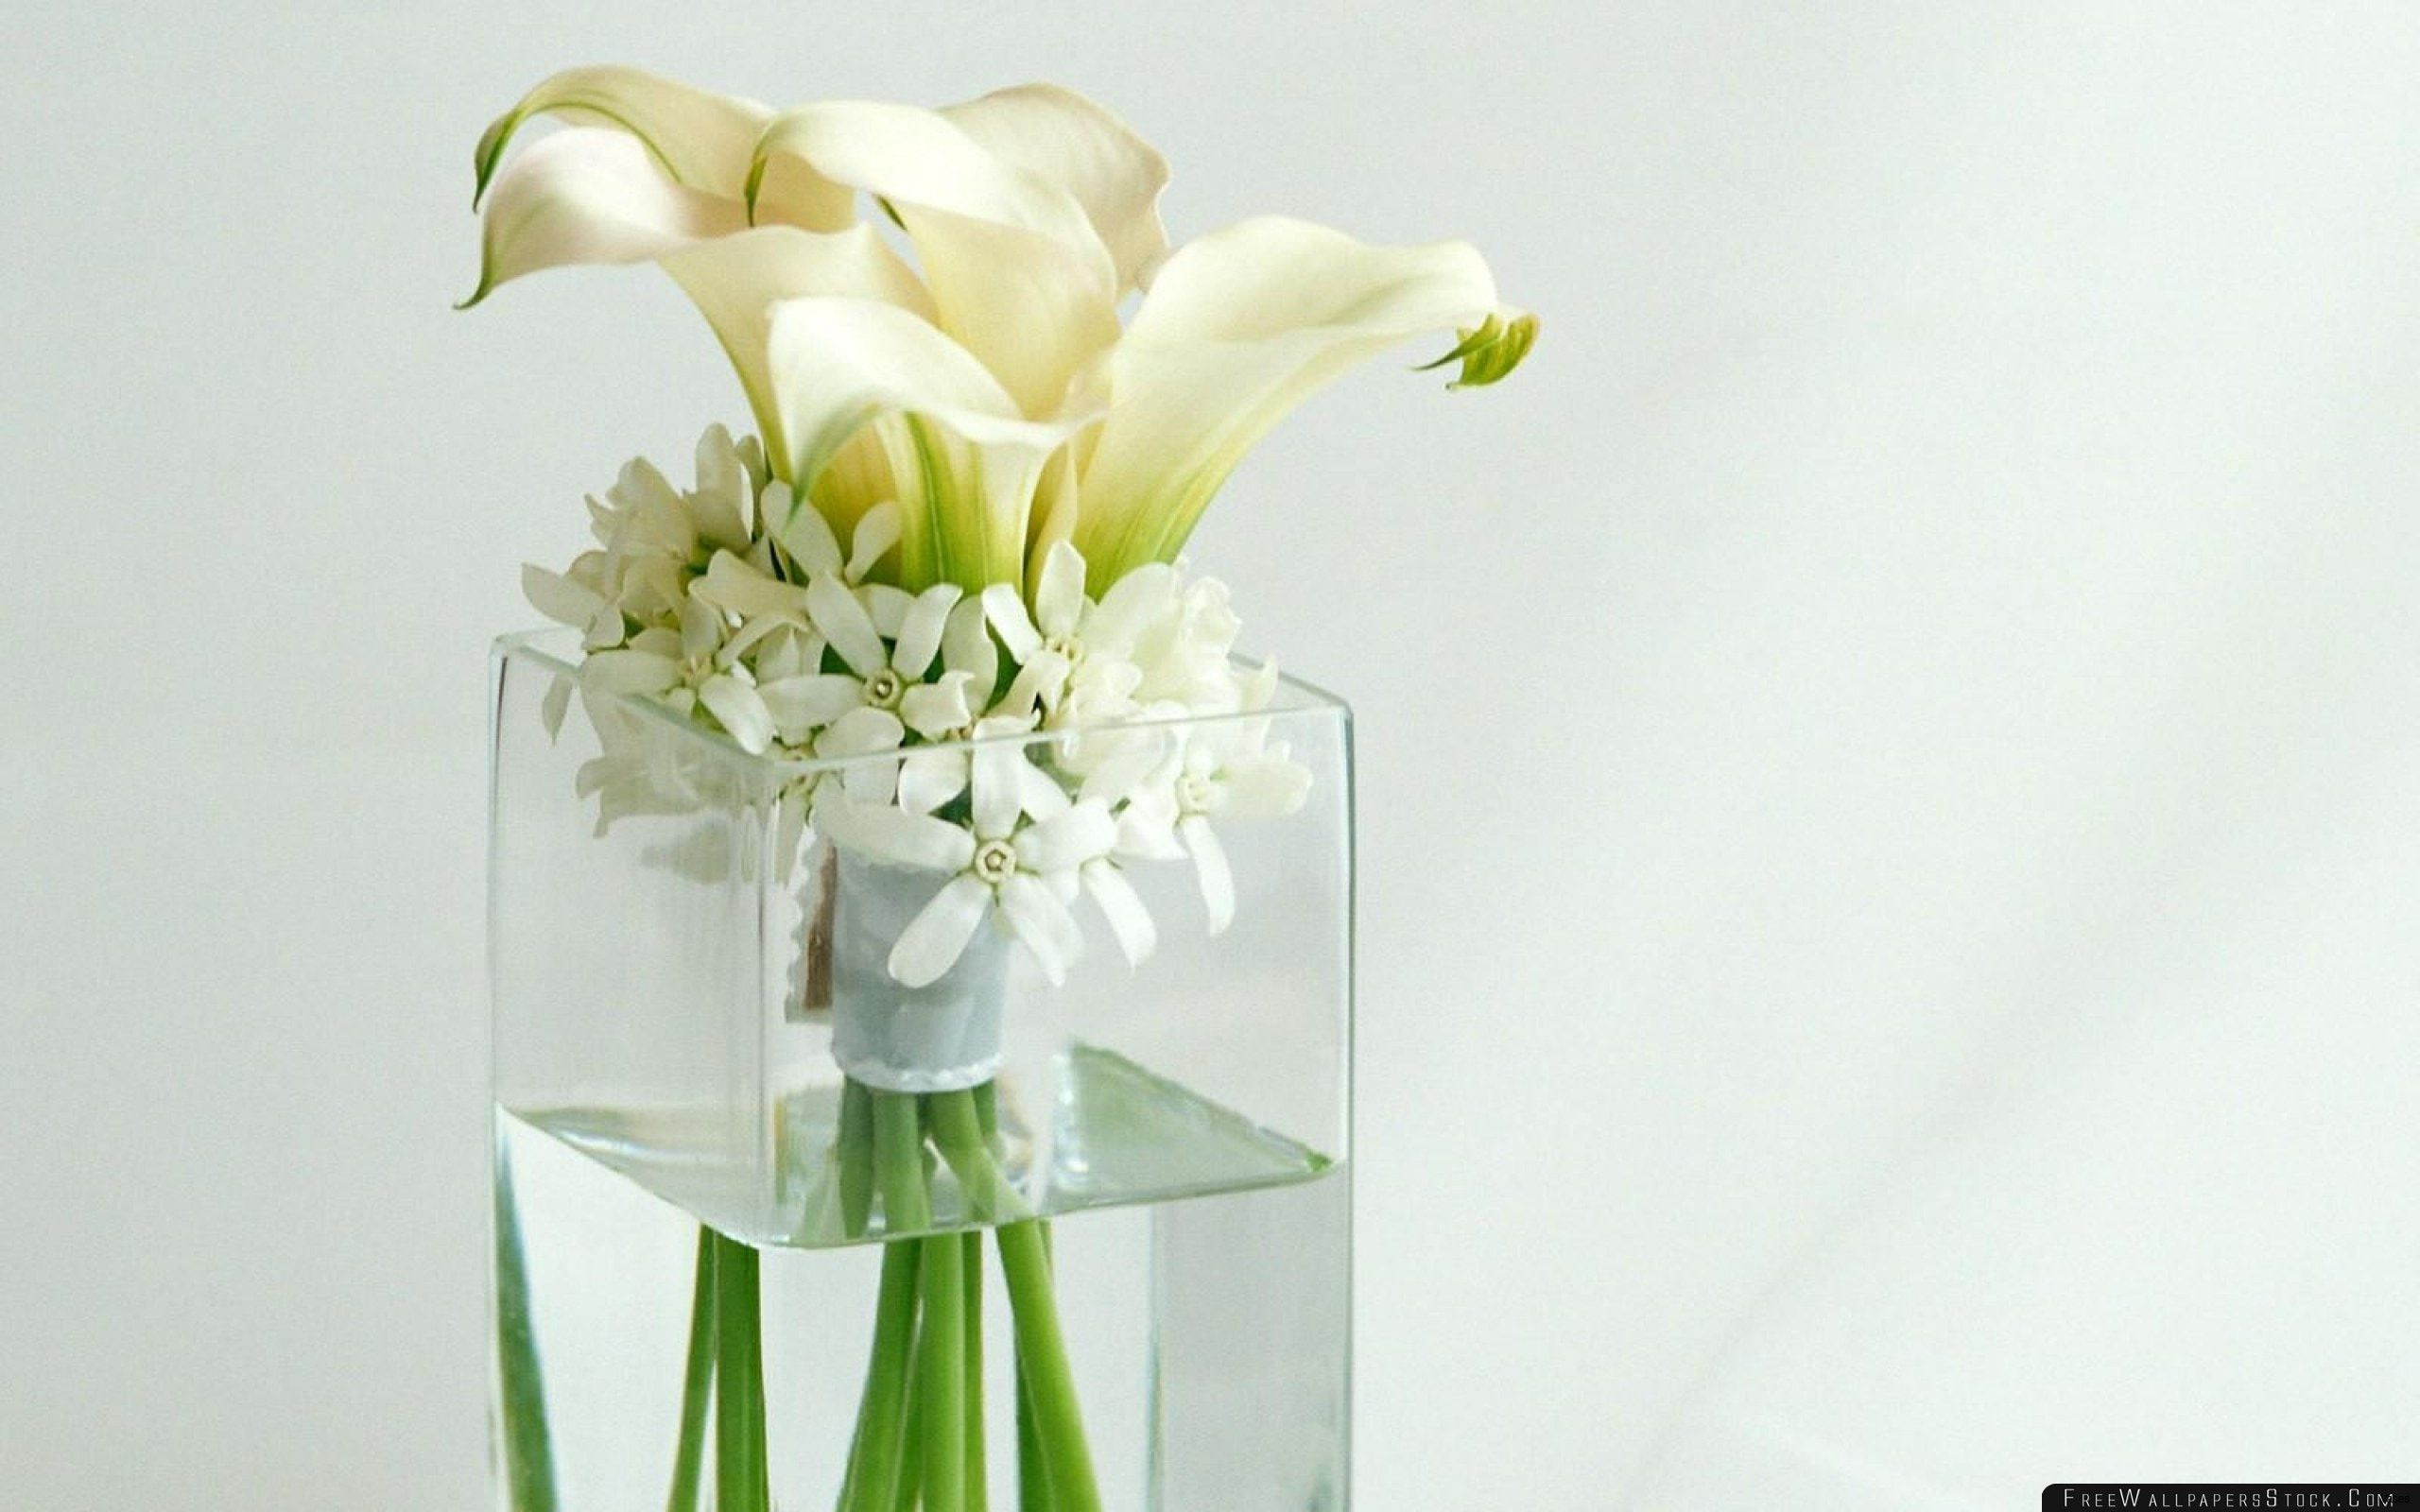 clear vases bulk of flowers in glass vase new tall vase centerpiece ideas vases flowers for flowers in glass vase new tall vase centerpiece ideas vases flowers in water 0d artificial